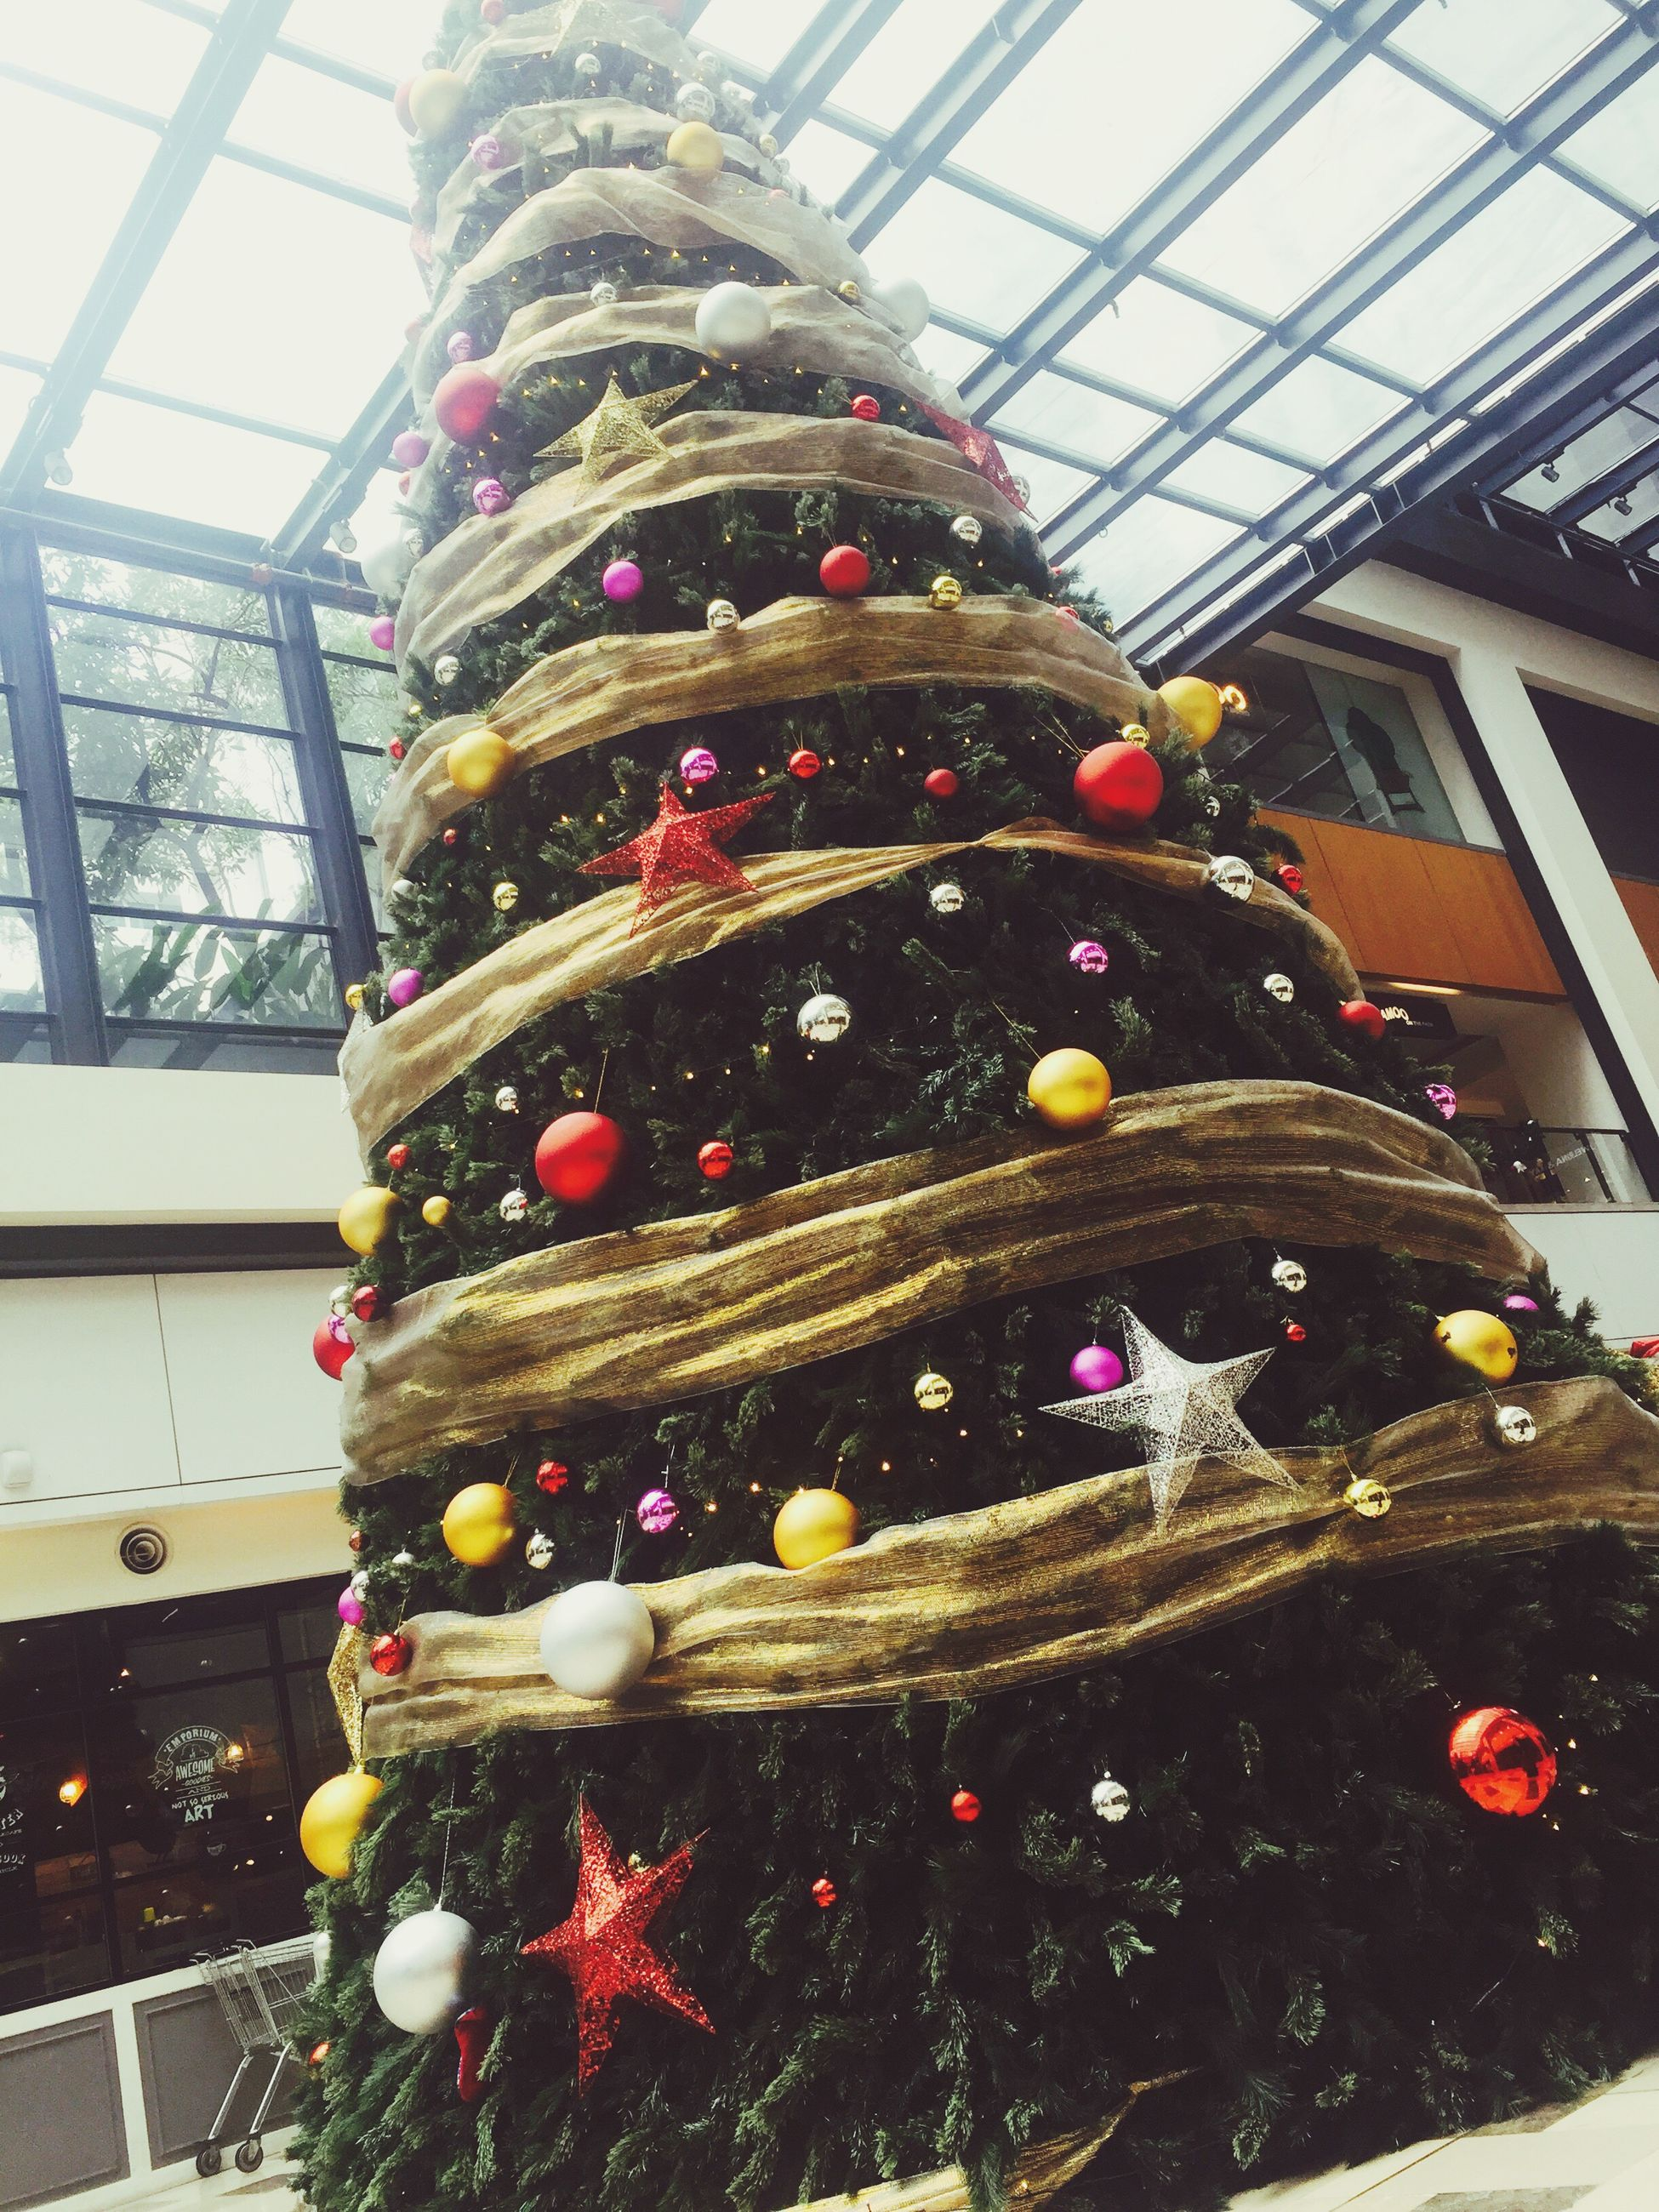 architecture, built structure, building exterior, decoration, art and craft, art, animal representation, incidental people, indoors, glass - material, christmas, sculpture, flower, creativity, day, human representation, celebration, low angle view, christmas tree, city